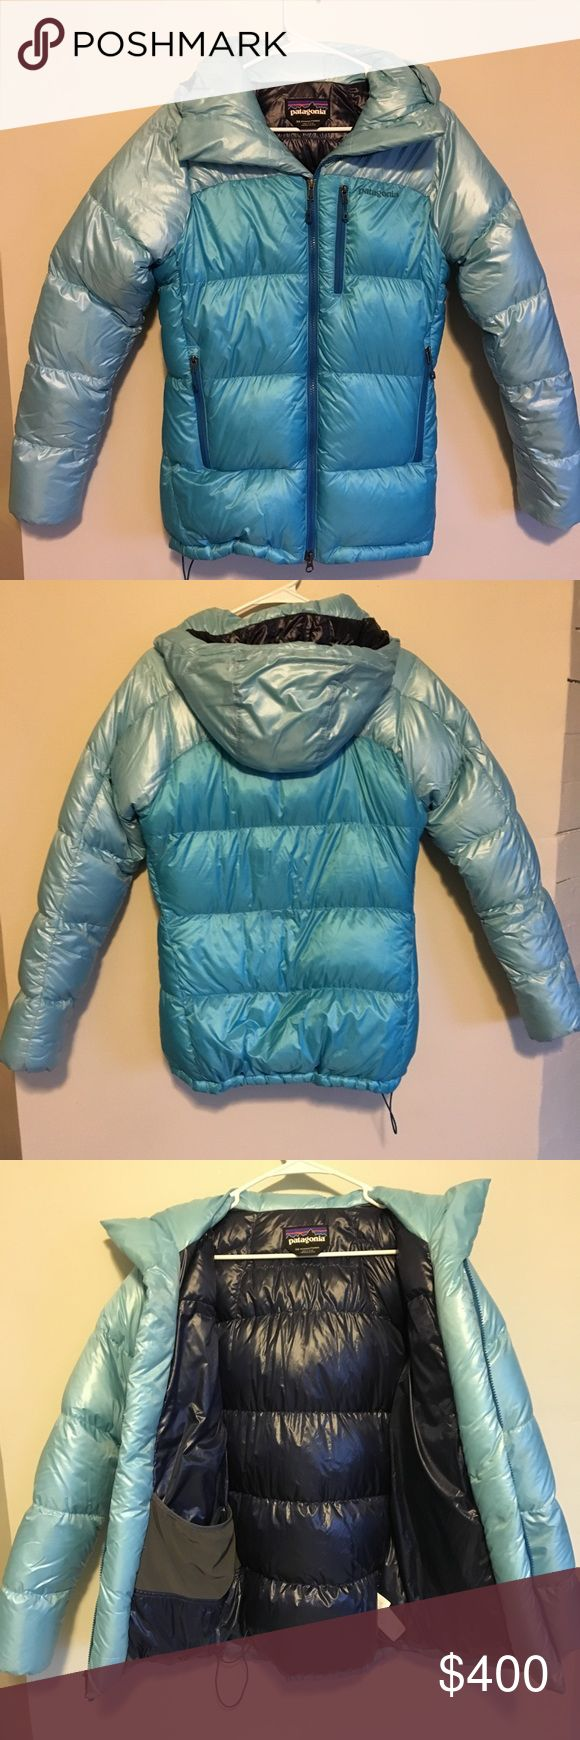 Blue Patagonia Parka This down jacket is absolutely essential in those cold winter months. It brings a bit of color to the season with the three different shades of blue included on the coat. All pockets have down insulation (including chest pocket). Alpine helmet- compatible. Barely worn Patagonia Jackets & Coats Puffers